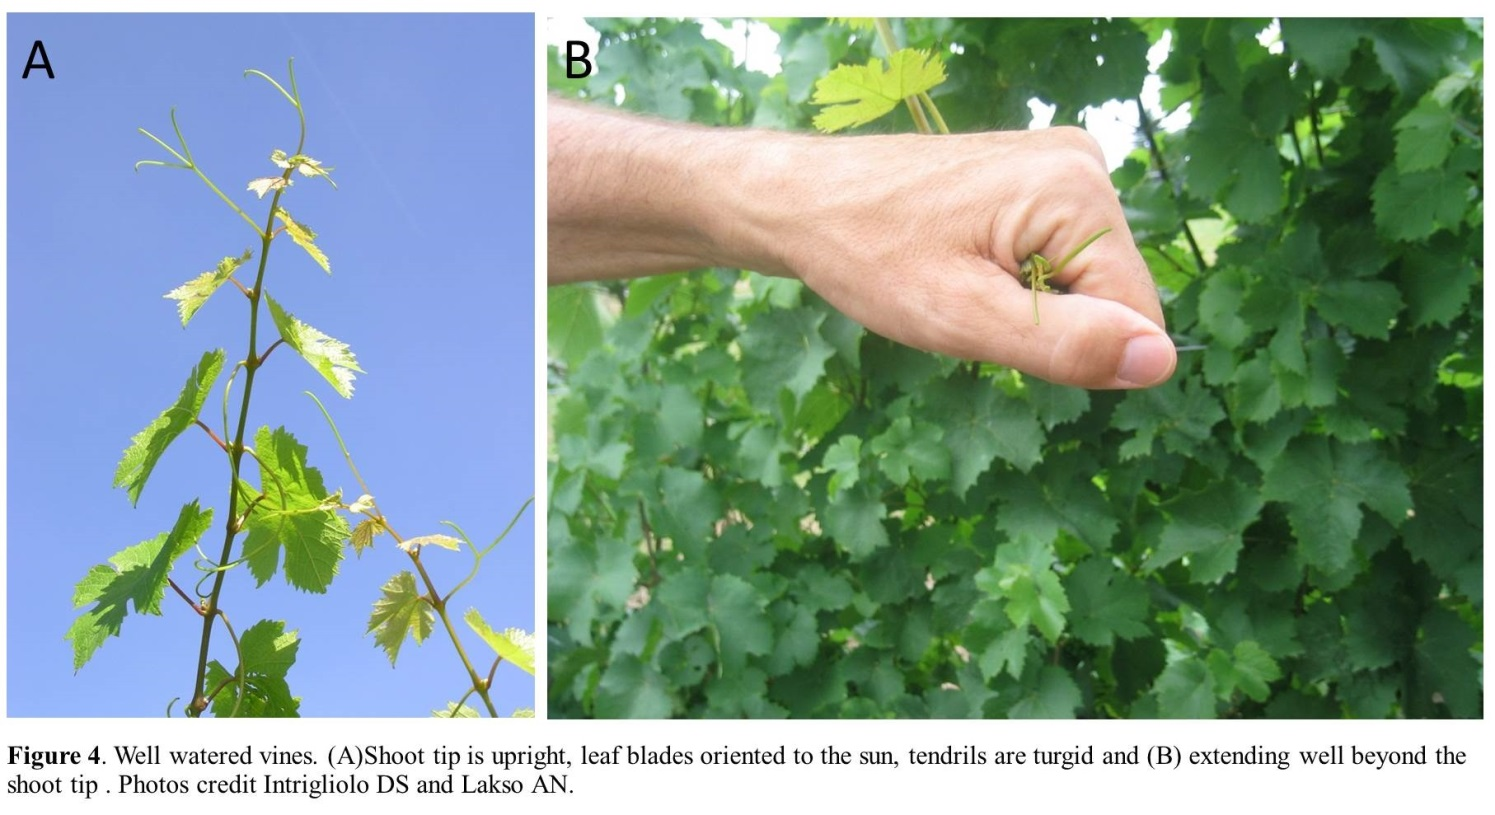 water stressed vines | Wine & Grapes U.